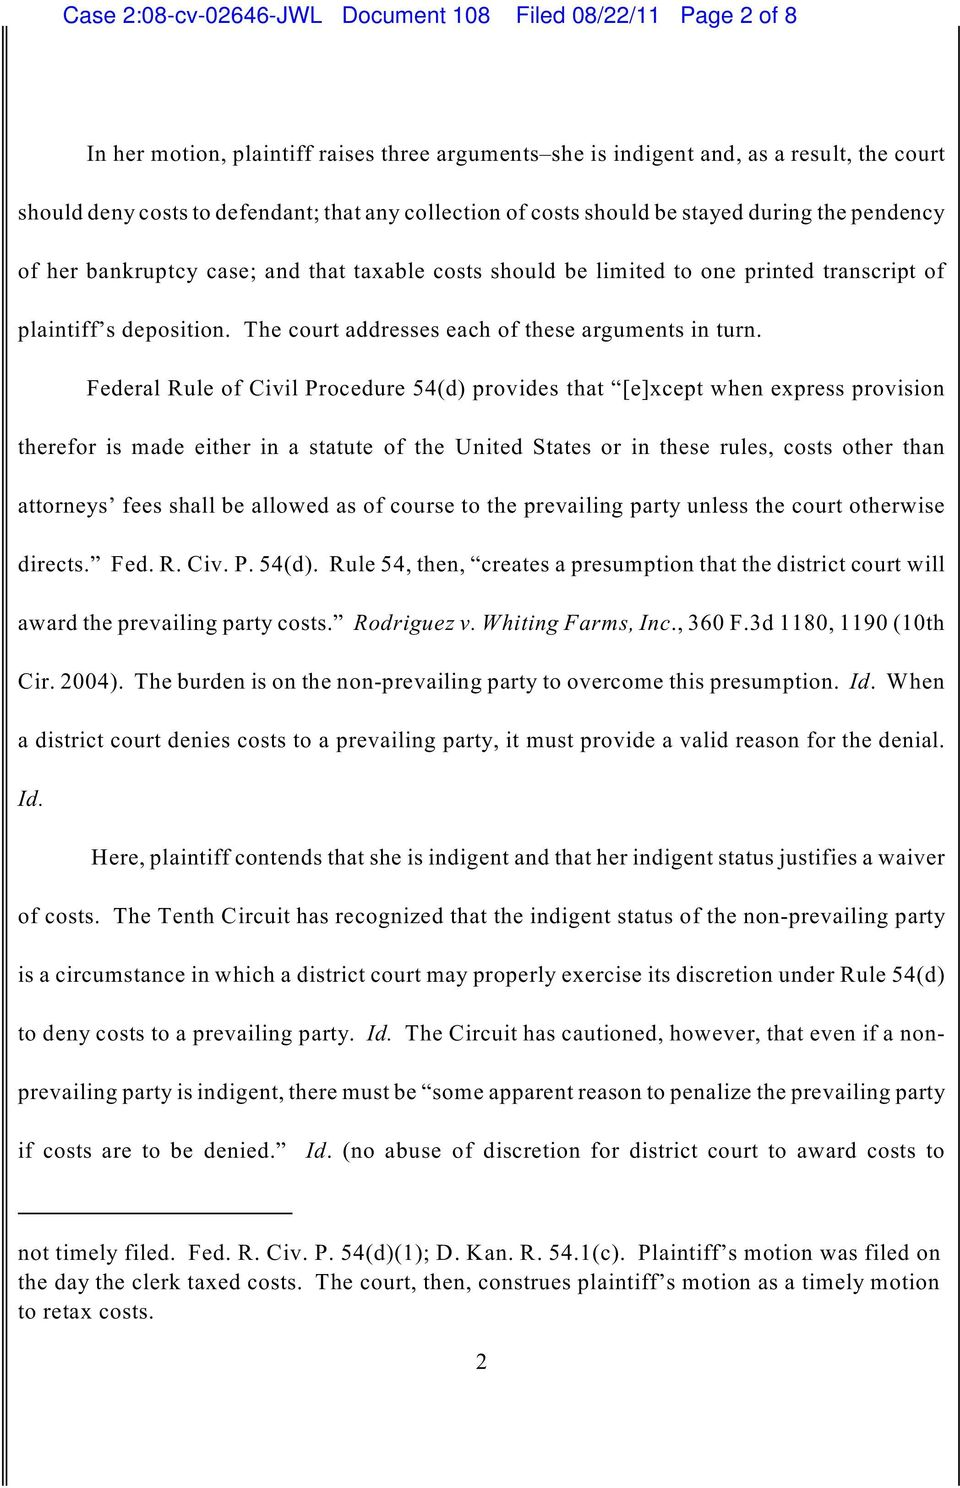 The court addresses each of these arguments in turn.